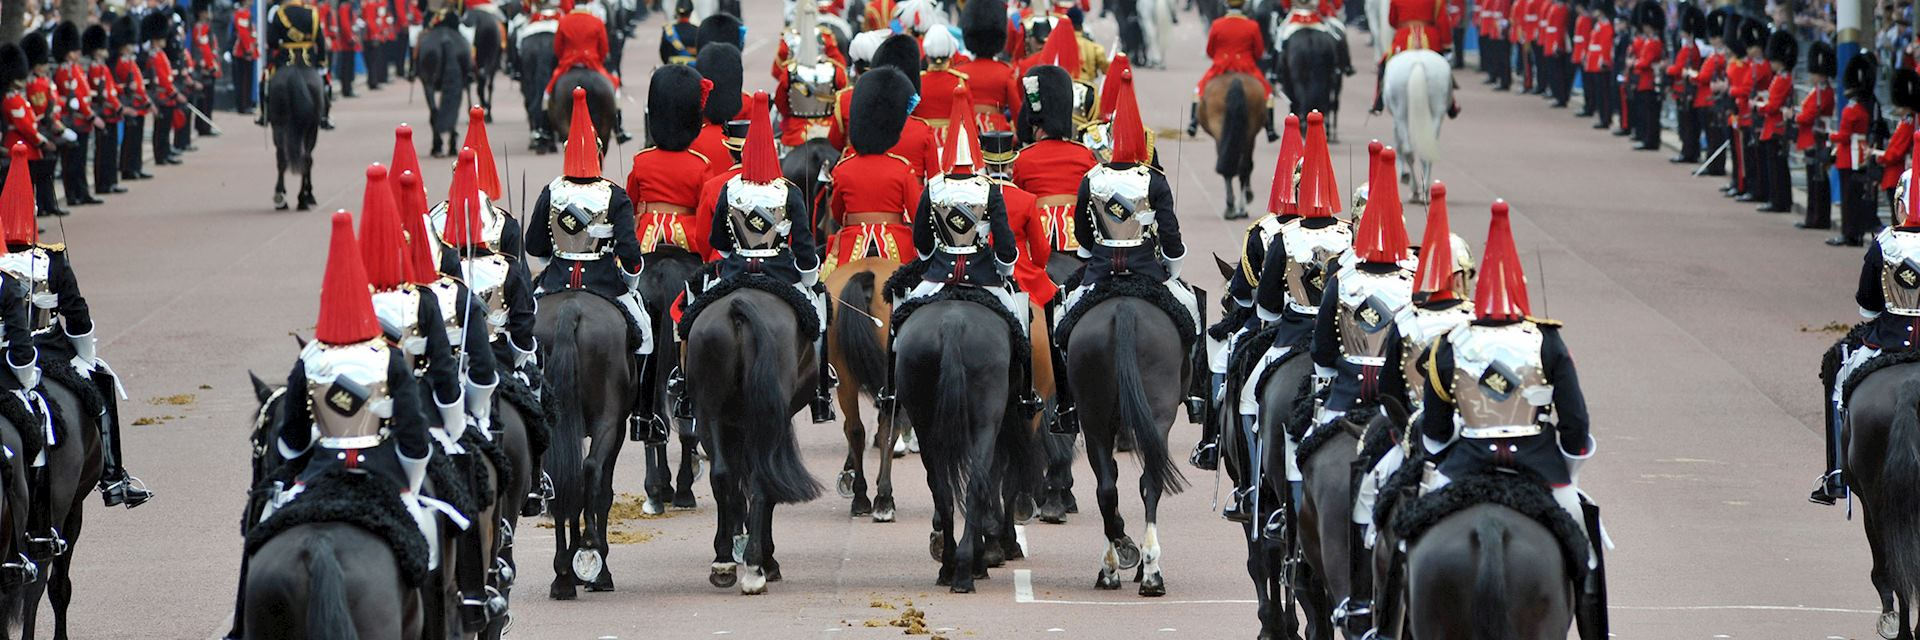 Horseguards on parade, London